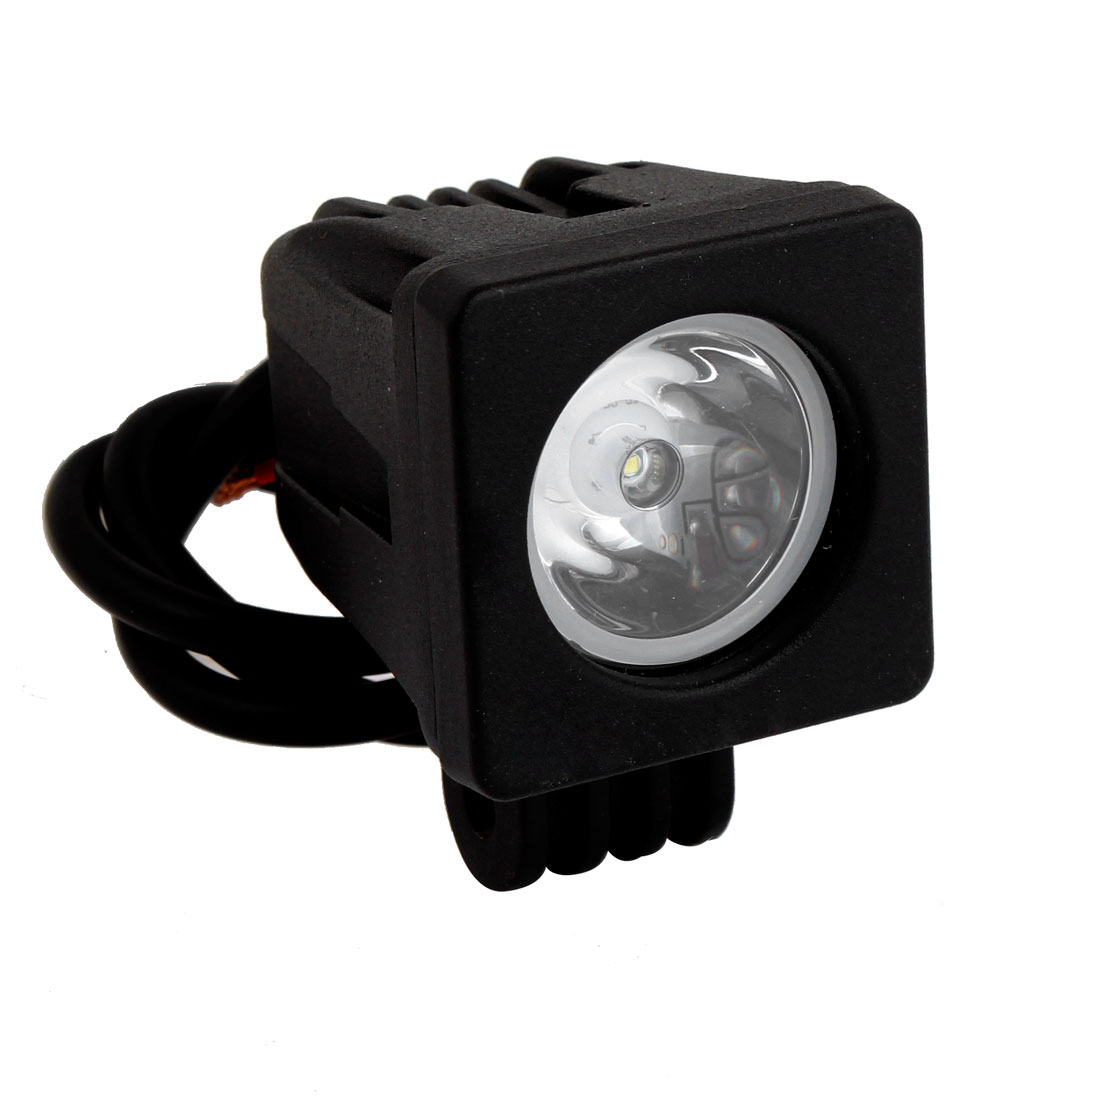 White LED Work Offroad Light Spot Beam Lamp 10W DC 12V for Car Auto